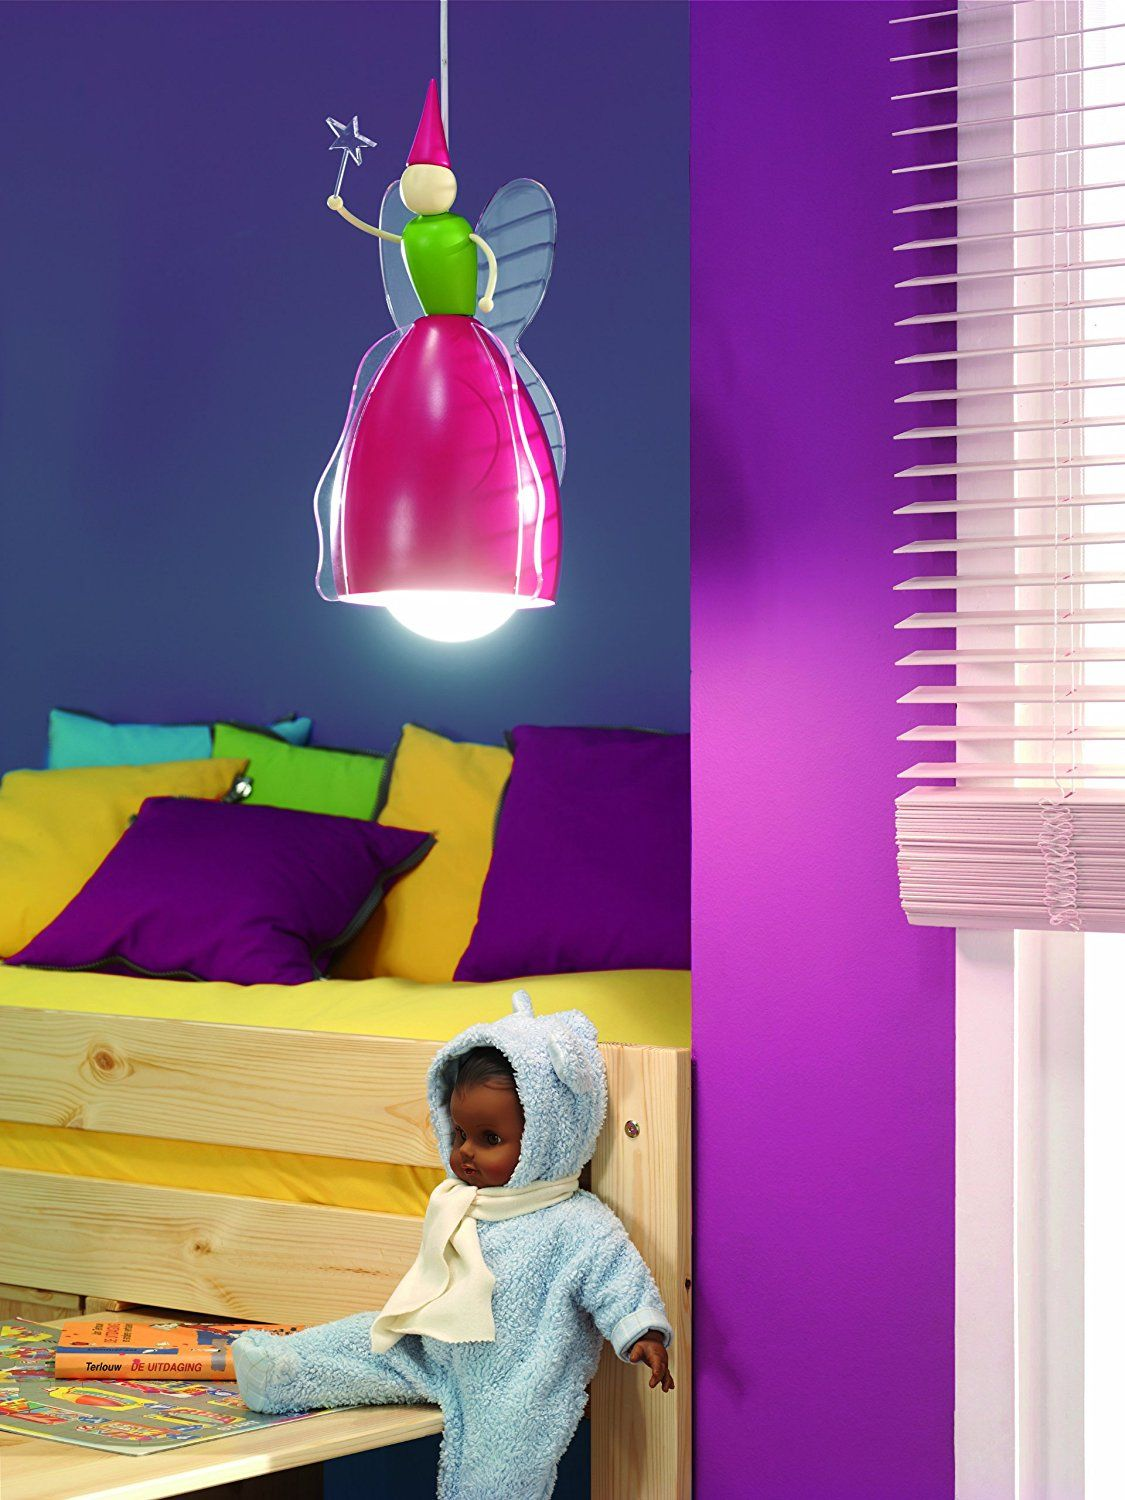 2019 Hanging Lights For Kids Room Ideas To Divide A Bedroom Check More At Http Davidhyounglaw Com 99 Han Kids Room Lighting Room Hanging Lights Room Lights